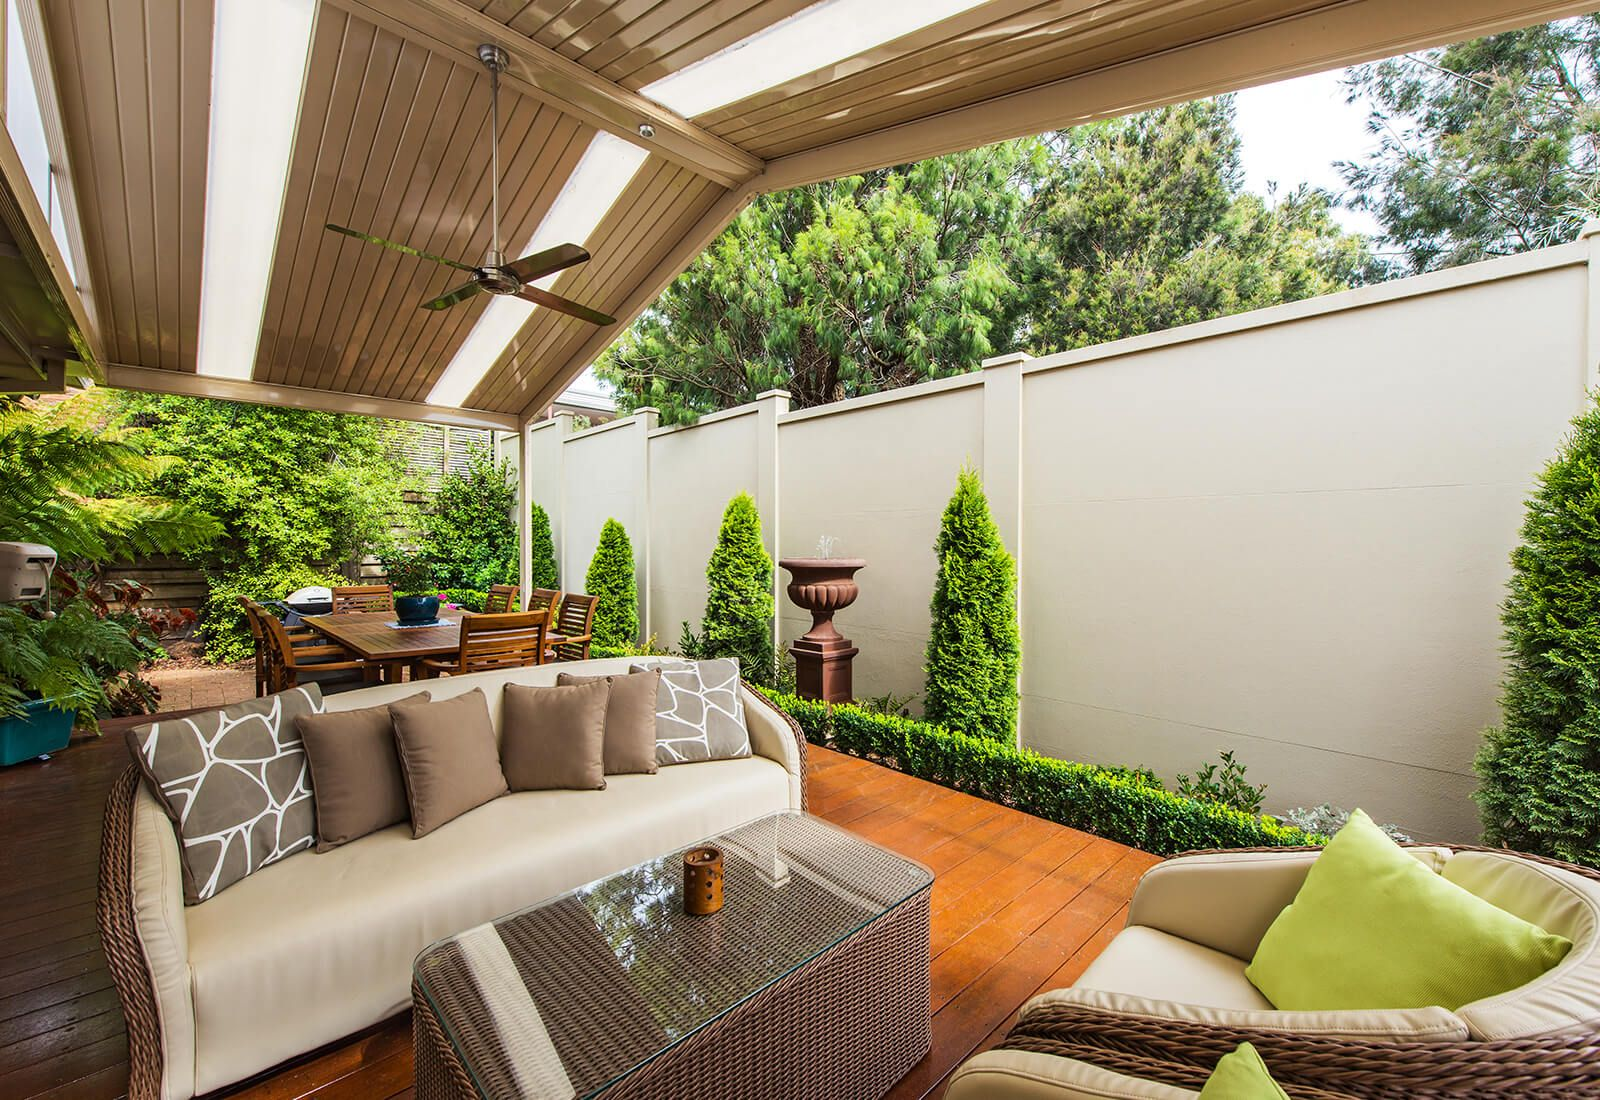 VogueWall™ Acoustic Wall System in 2020 Backyard, Garden